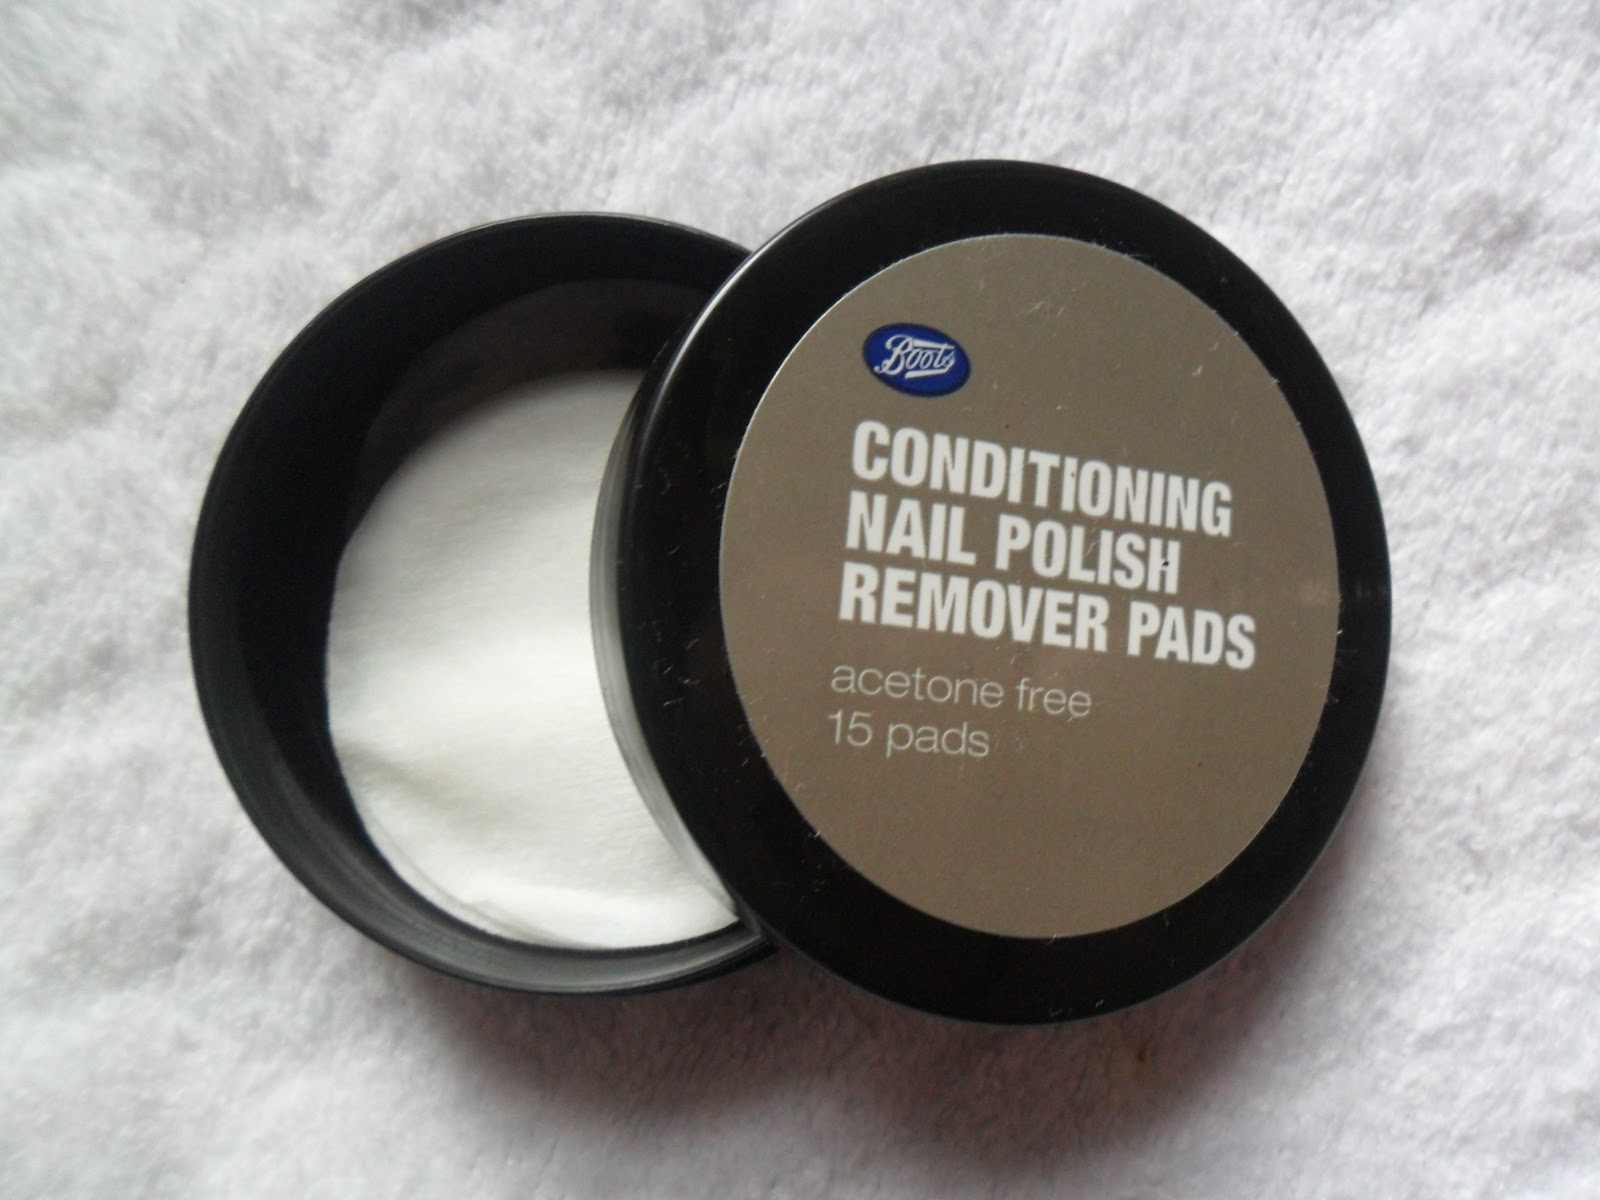 Ace Stace Beauty: Boots Conditioning Nail Polish Remover Pads - Beware!